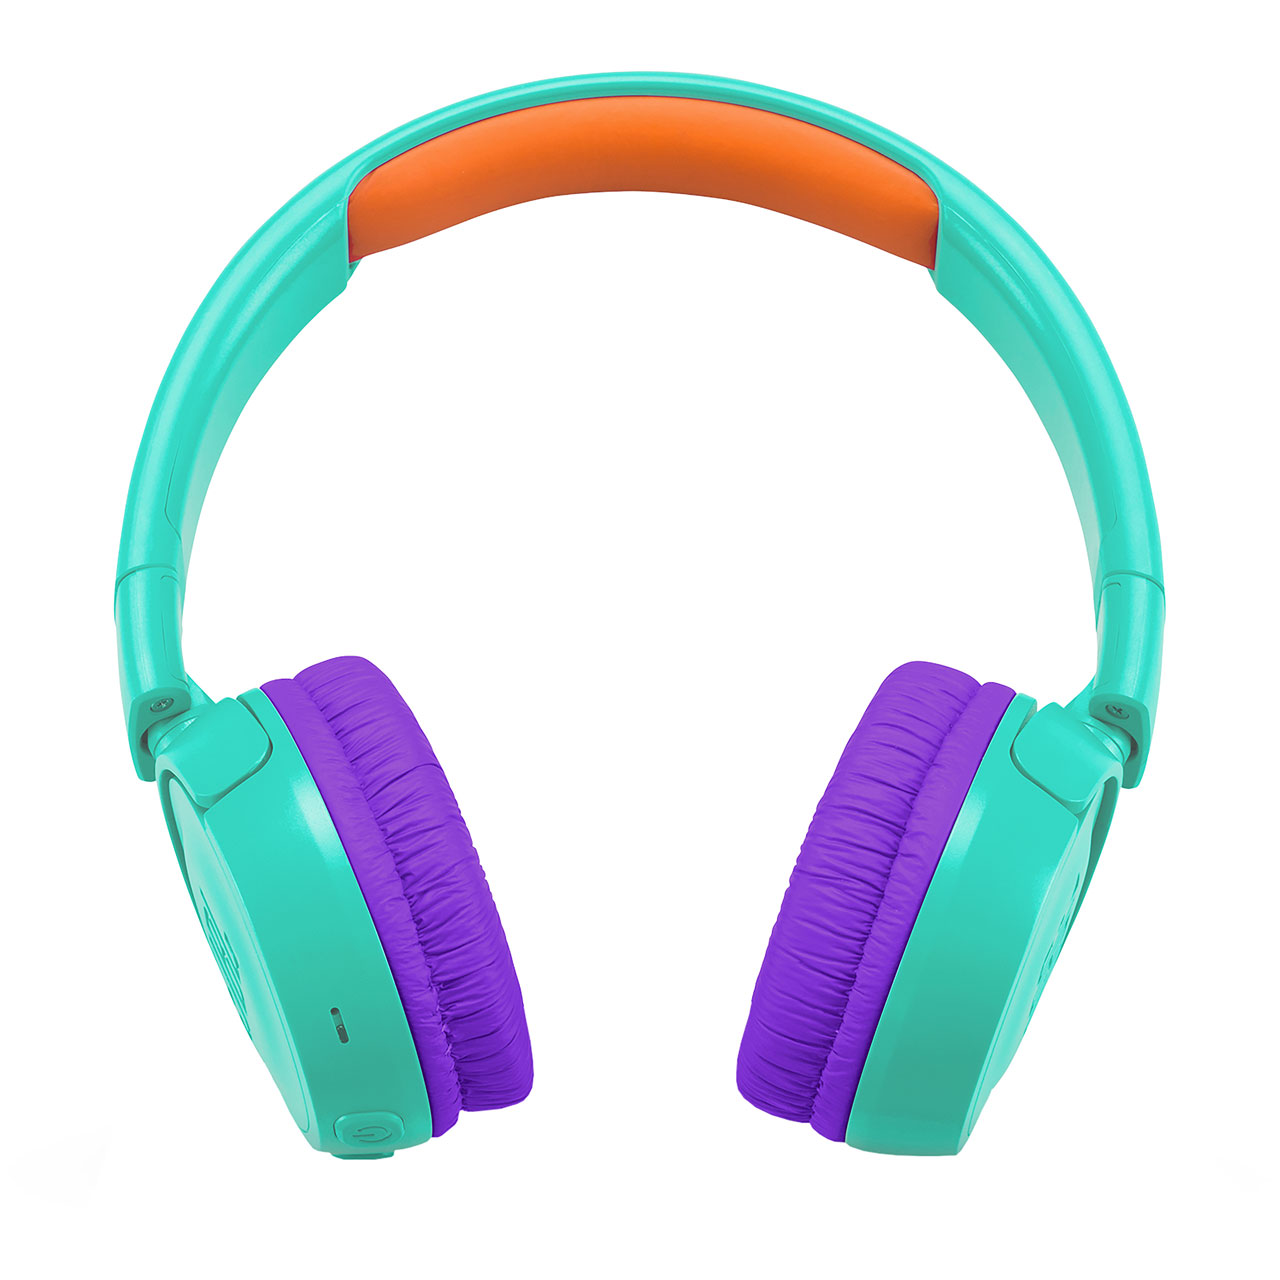 e630a0ae44a ... JBL JR300BT Kids Over-Ear Wireless Headphones - Teal - 368792 - 1 ...